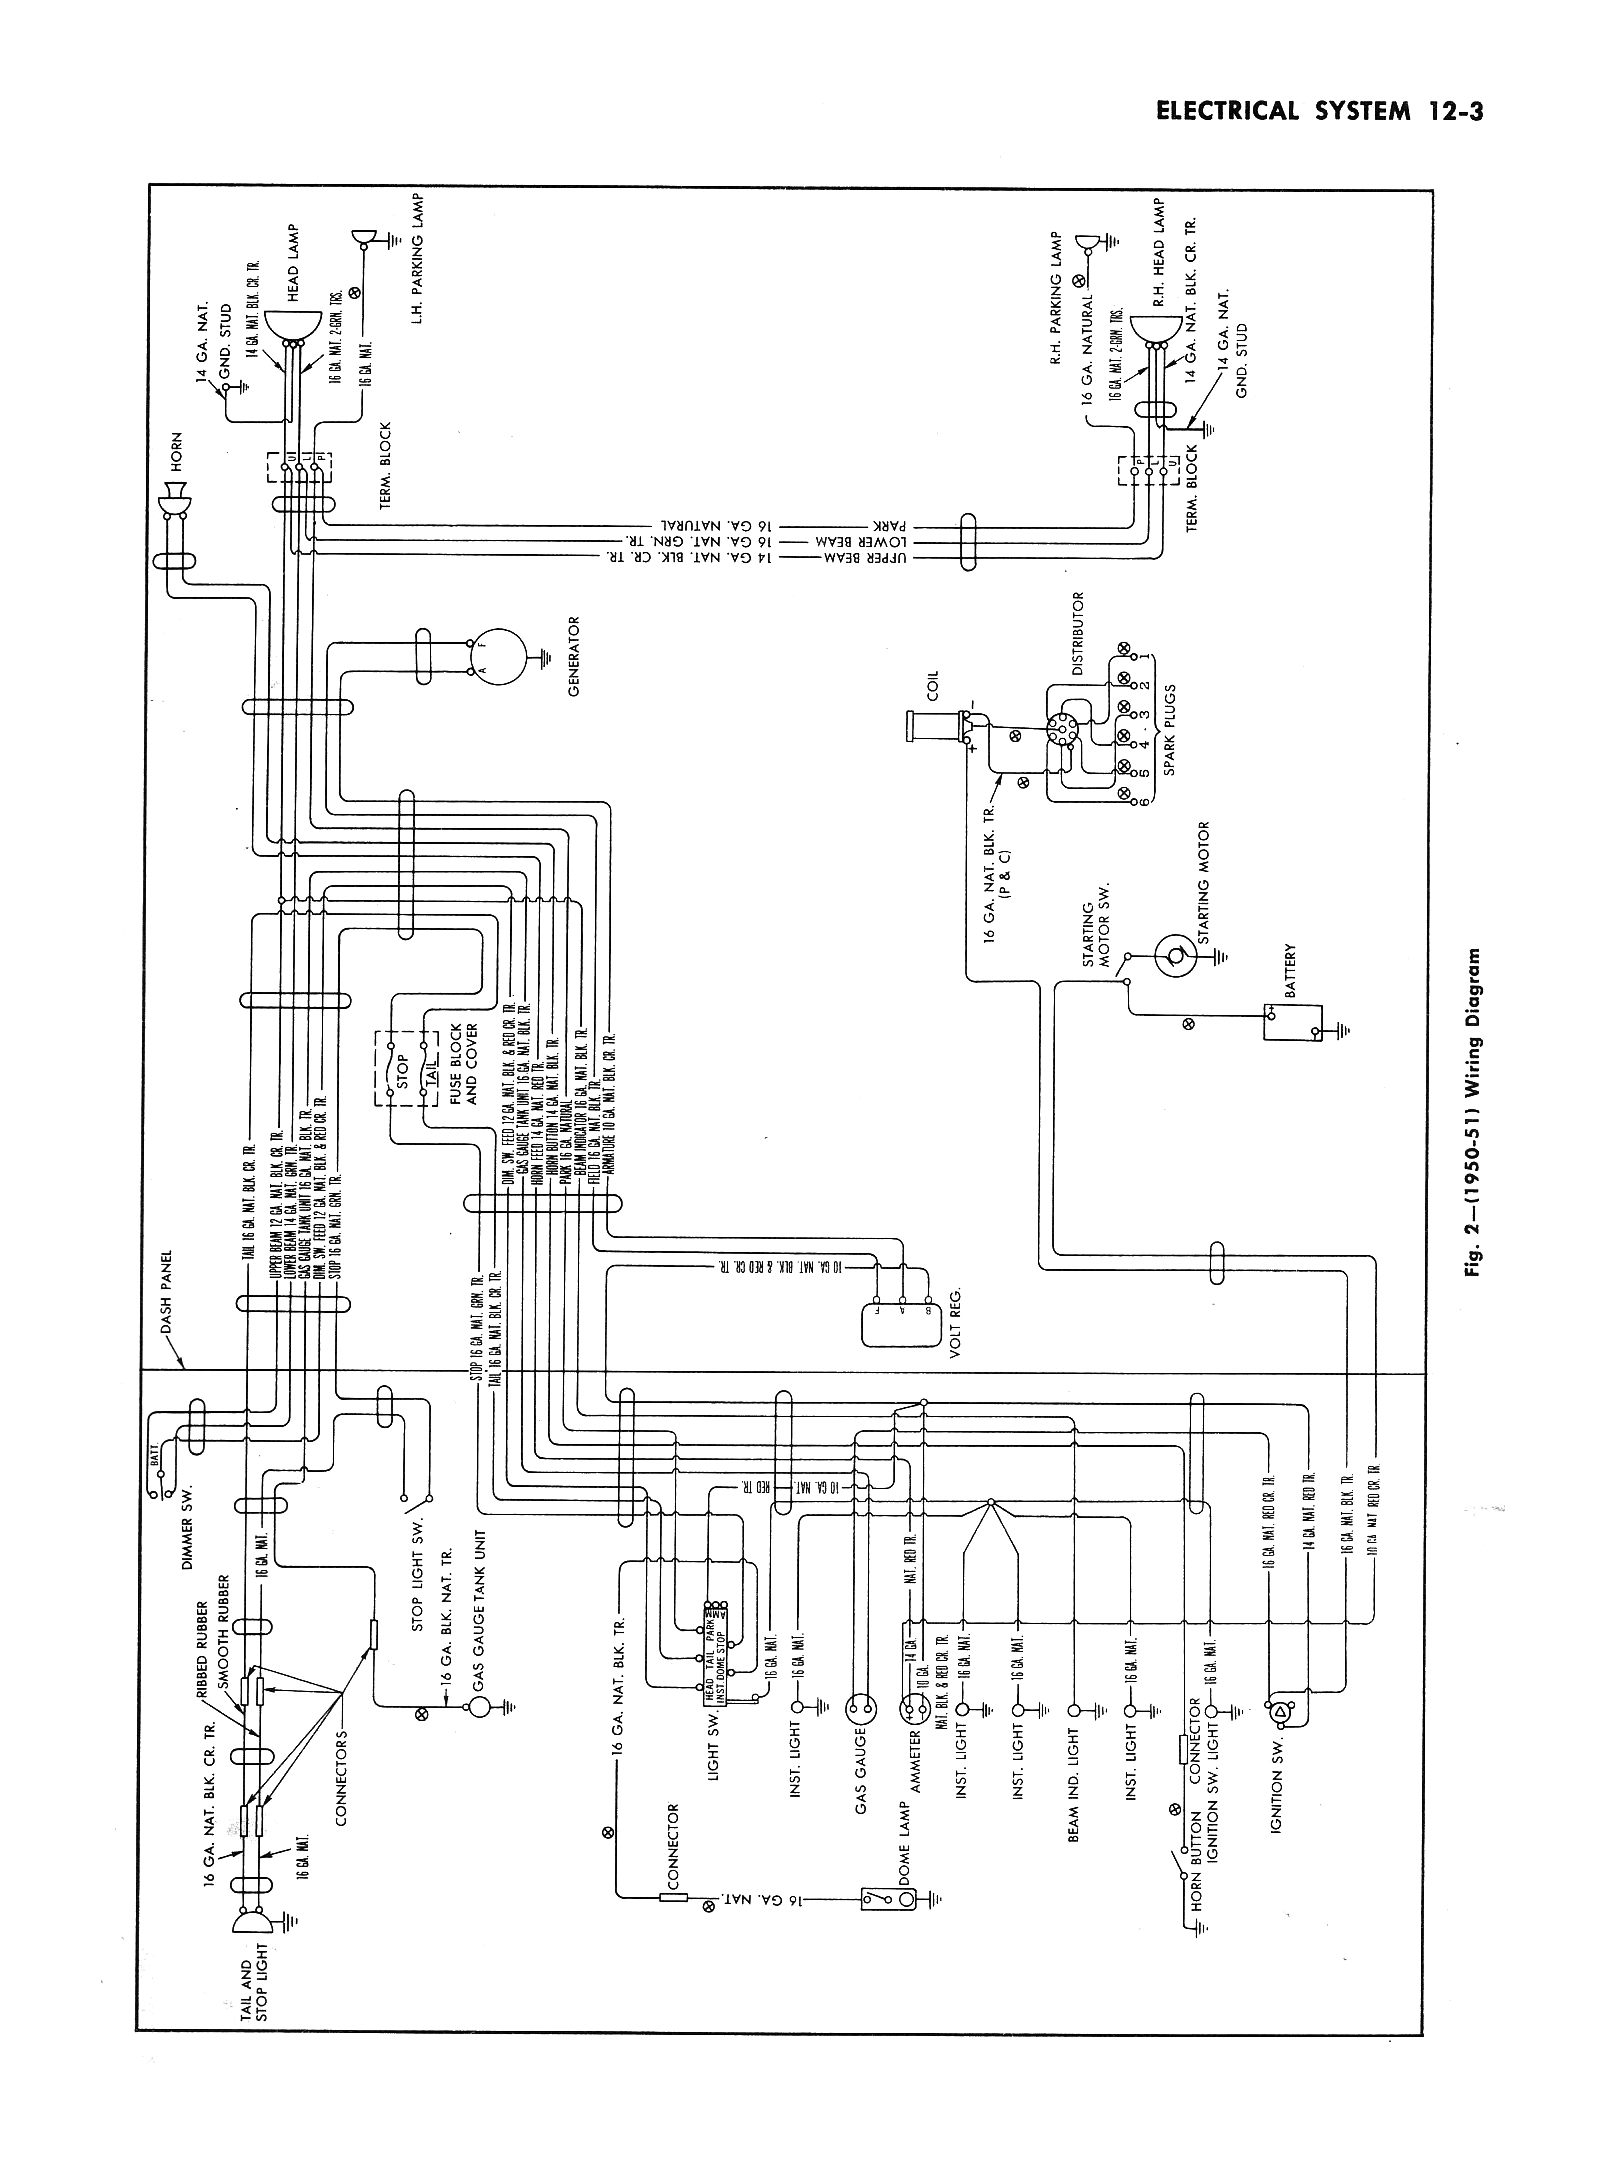 Chevy Ke Light Switch Wiring Diagram, Chevy, Get Free